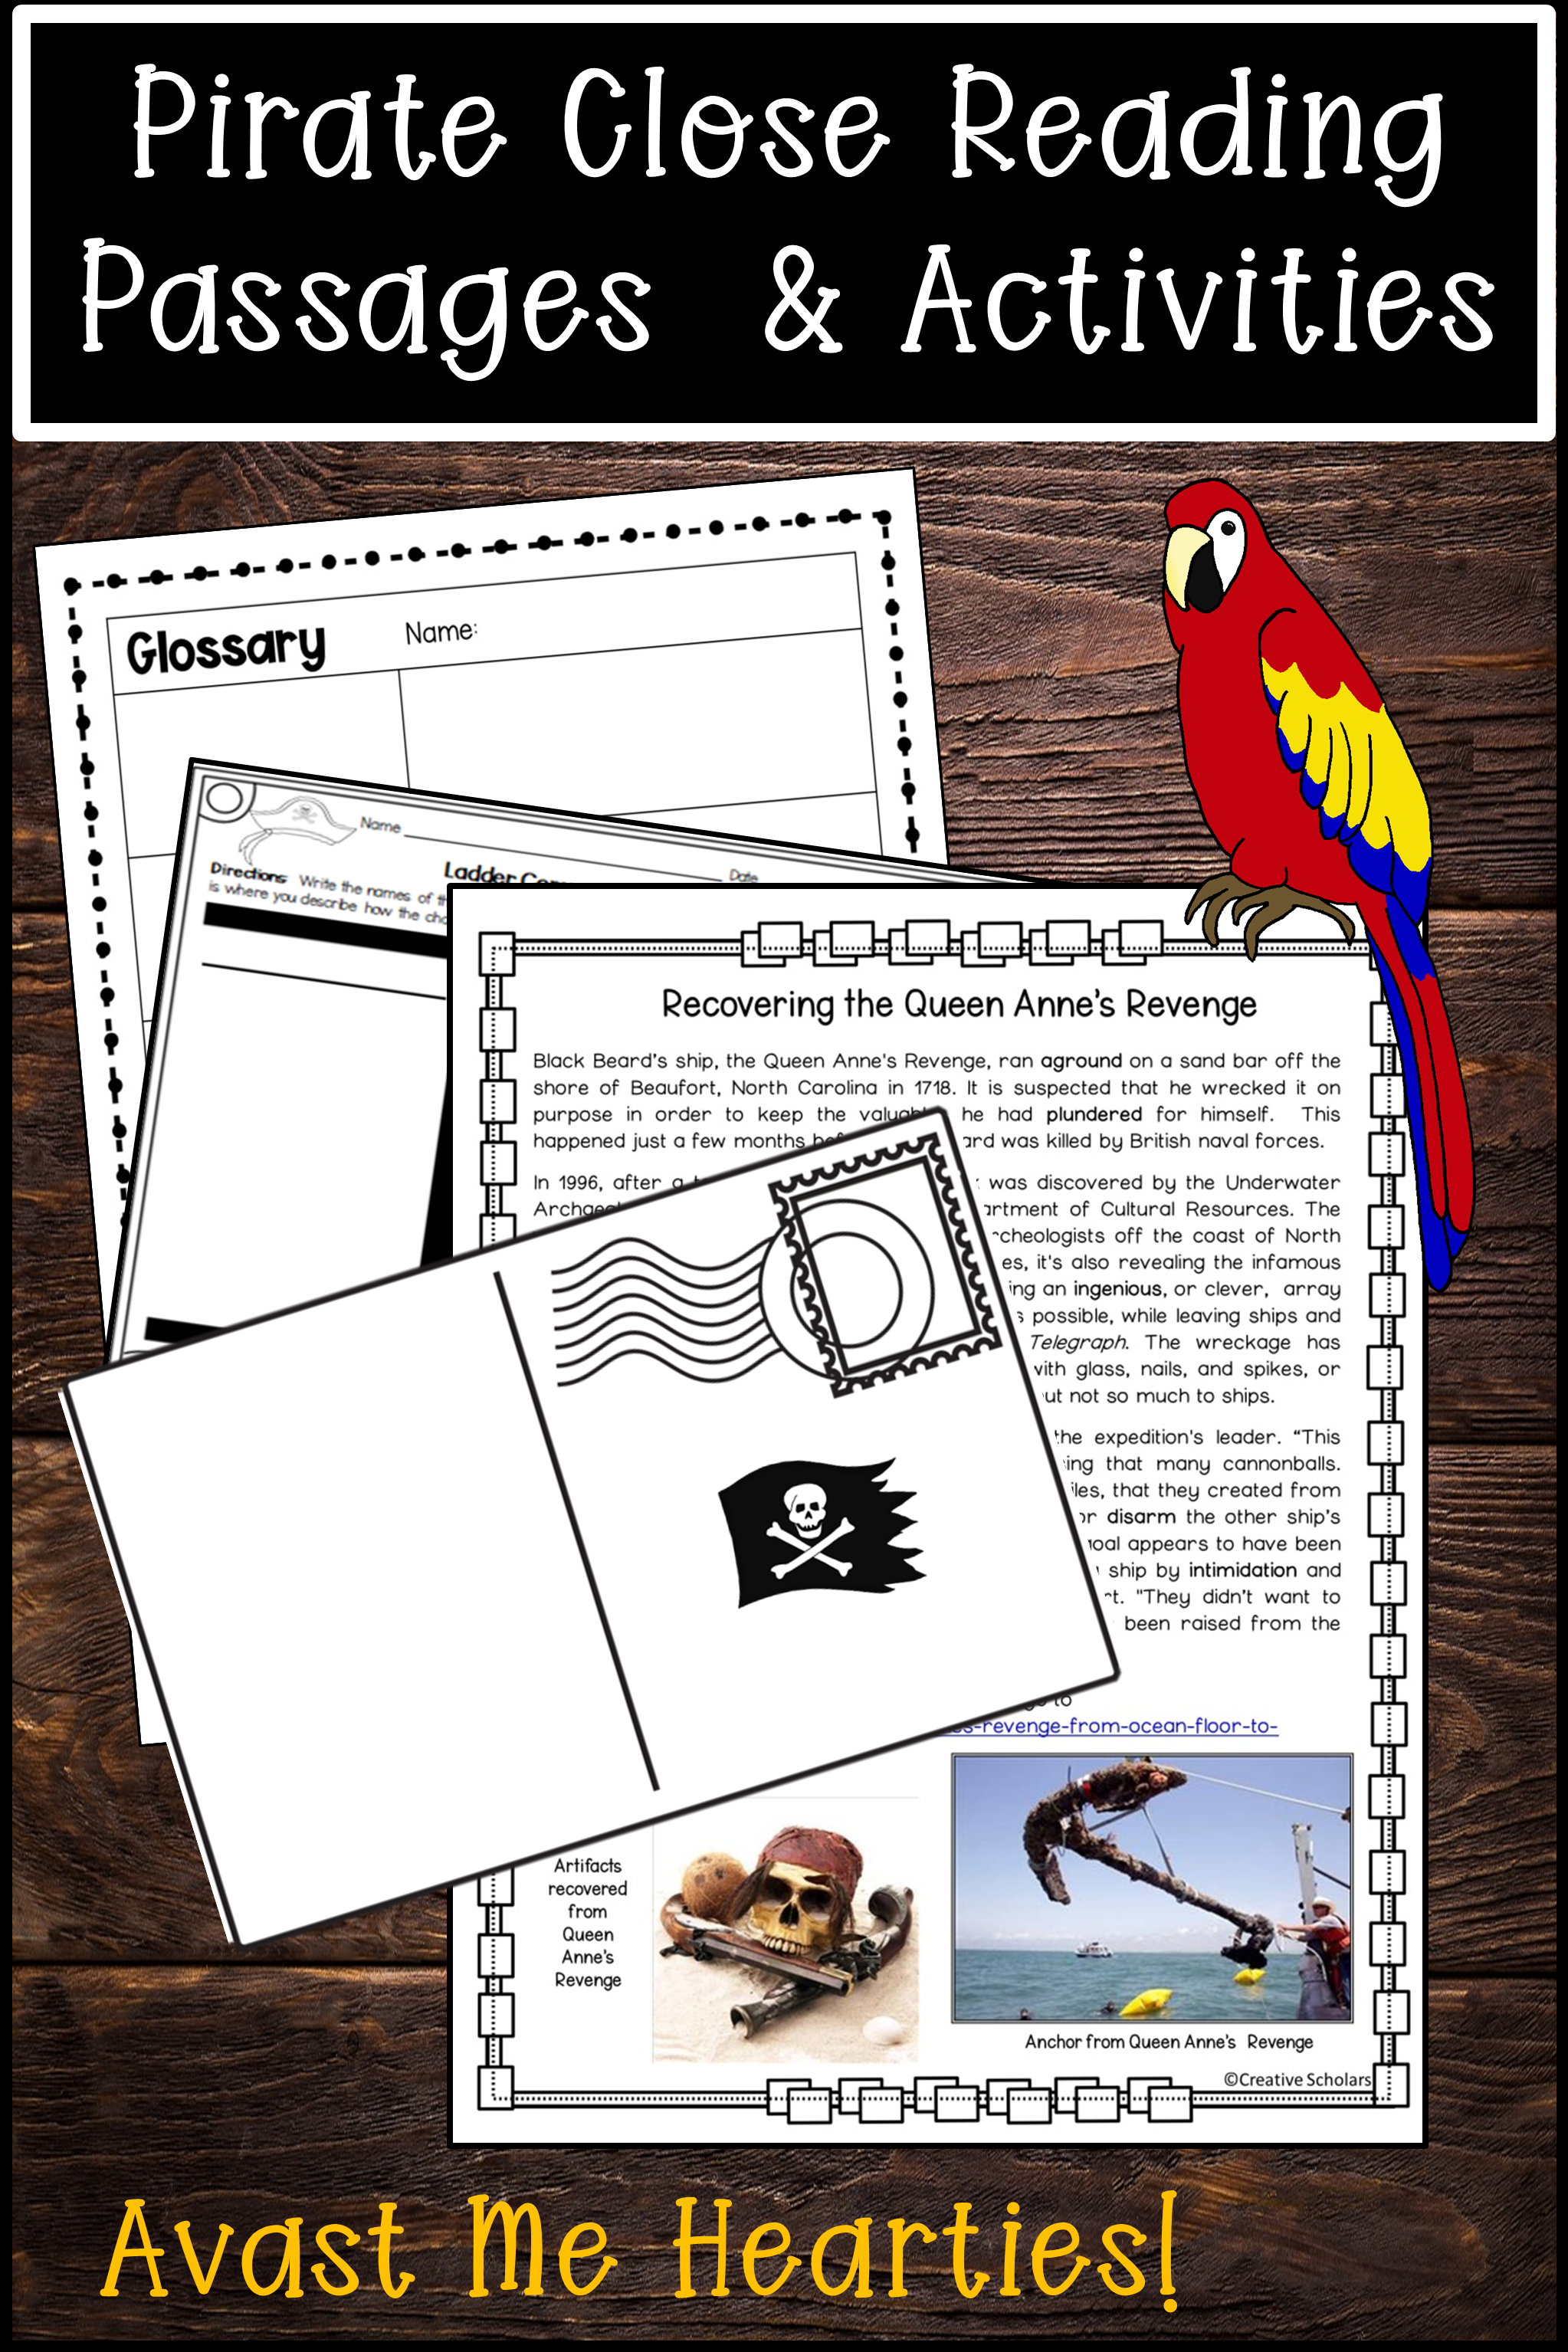 Pirates Close Reading Passages And Activities In 2020 Close Reading Passages Reading Passages Close Reading [ 3069 x 2046 Pixel ]